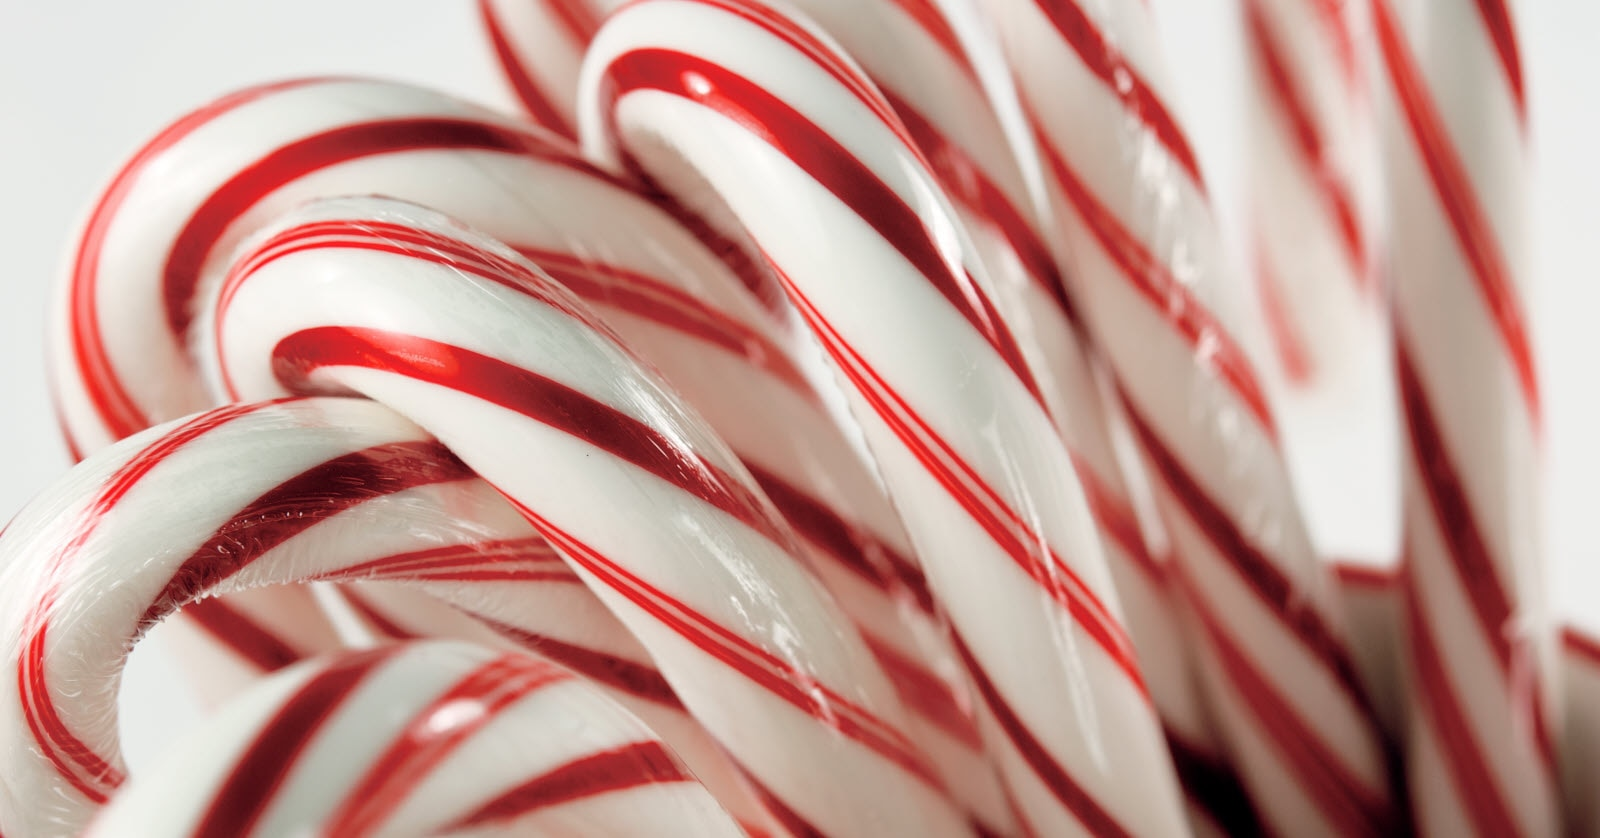 Festive red and white candy canes in a cup